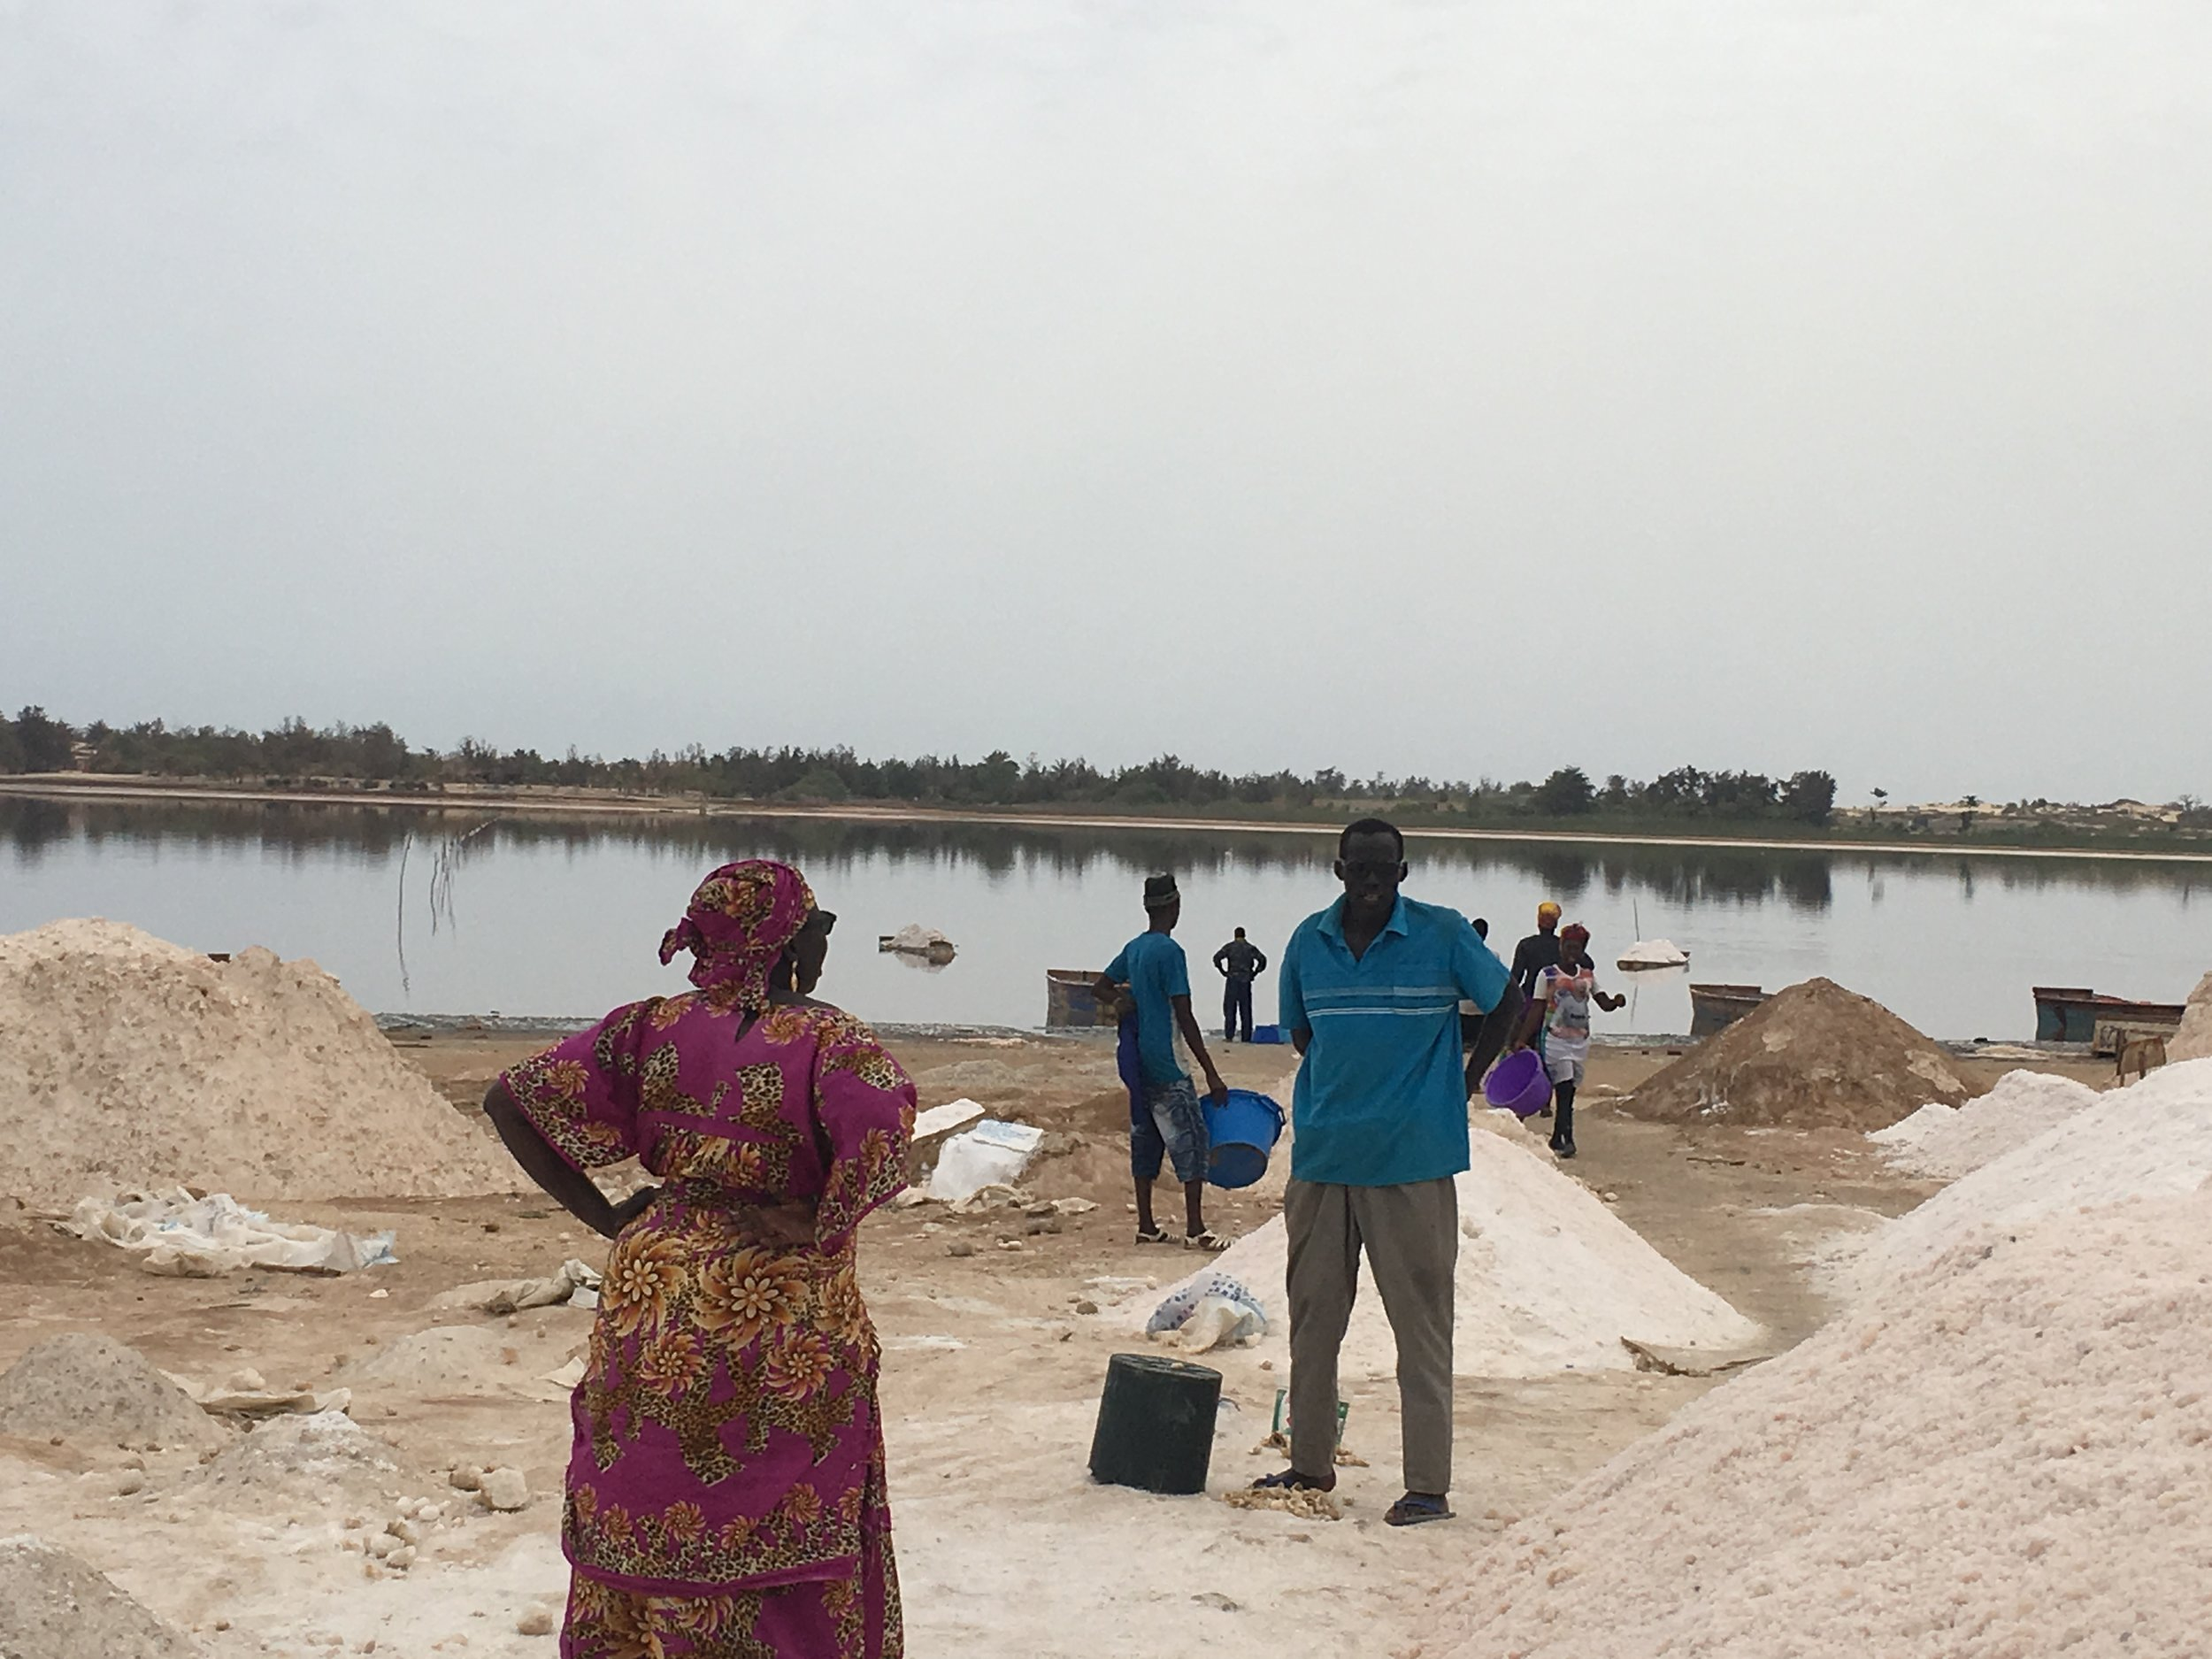 Women and men work to scoop the salt from the bottom of Lake Retba and pile it onshore for bagging and distribution.